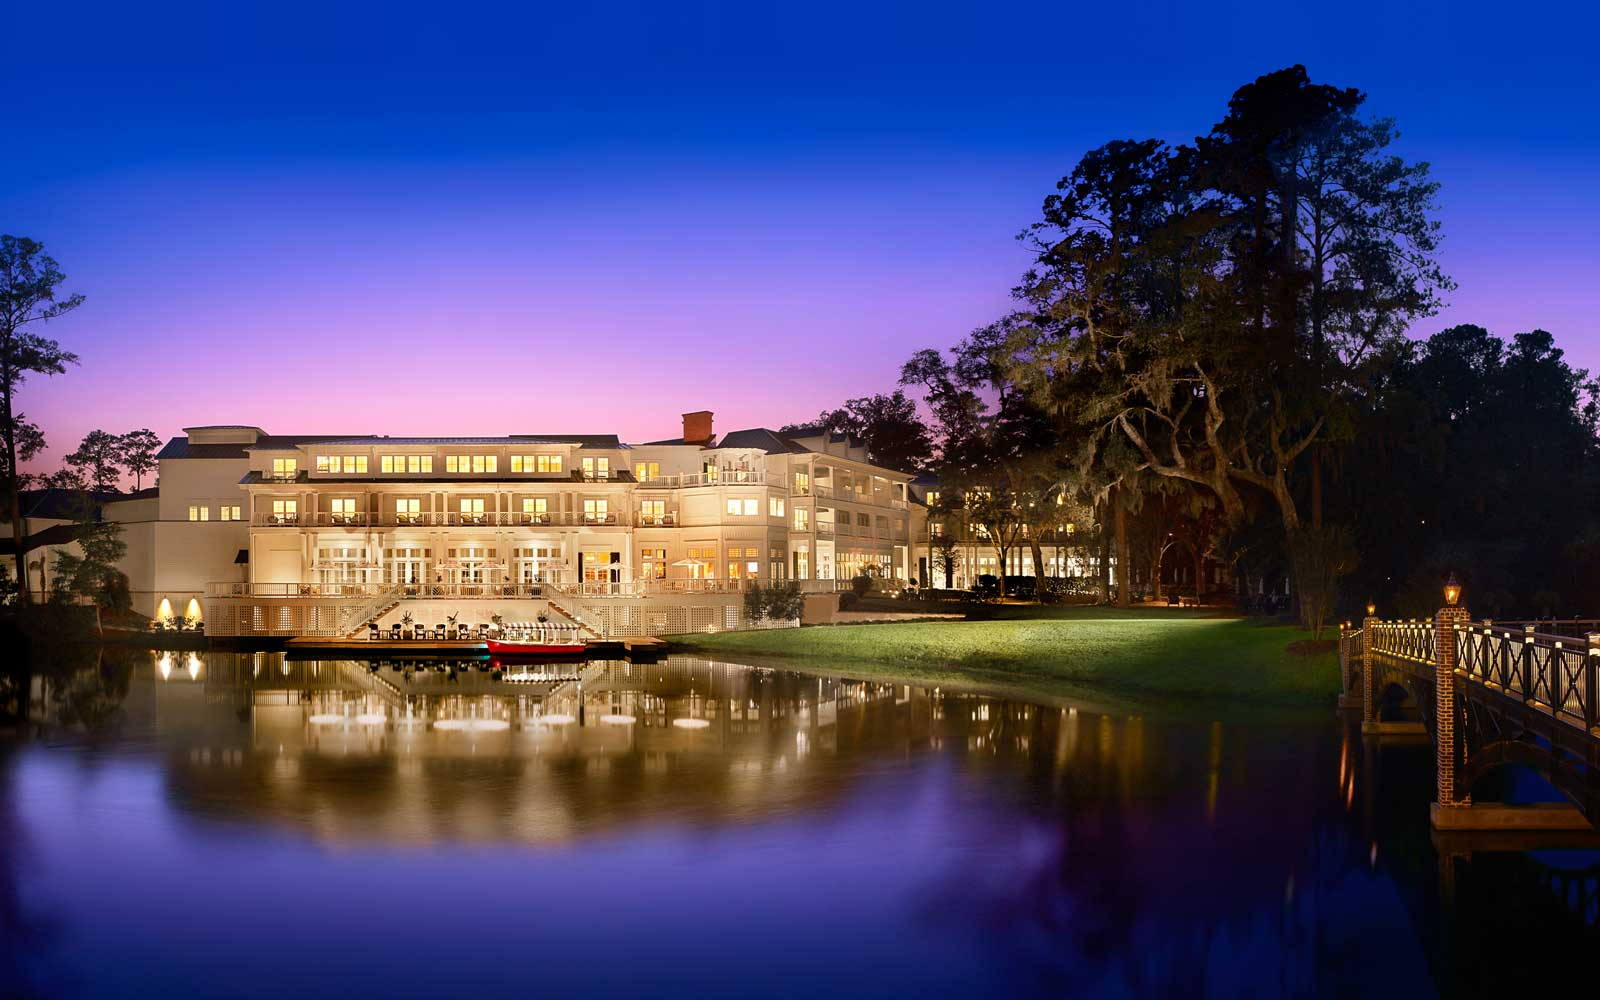 Experience South Carolina Lowcountry with 33% off Stays at Montage Palmetto Bluff